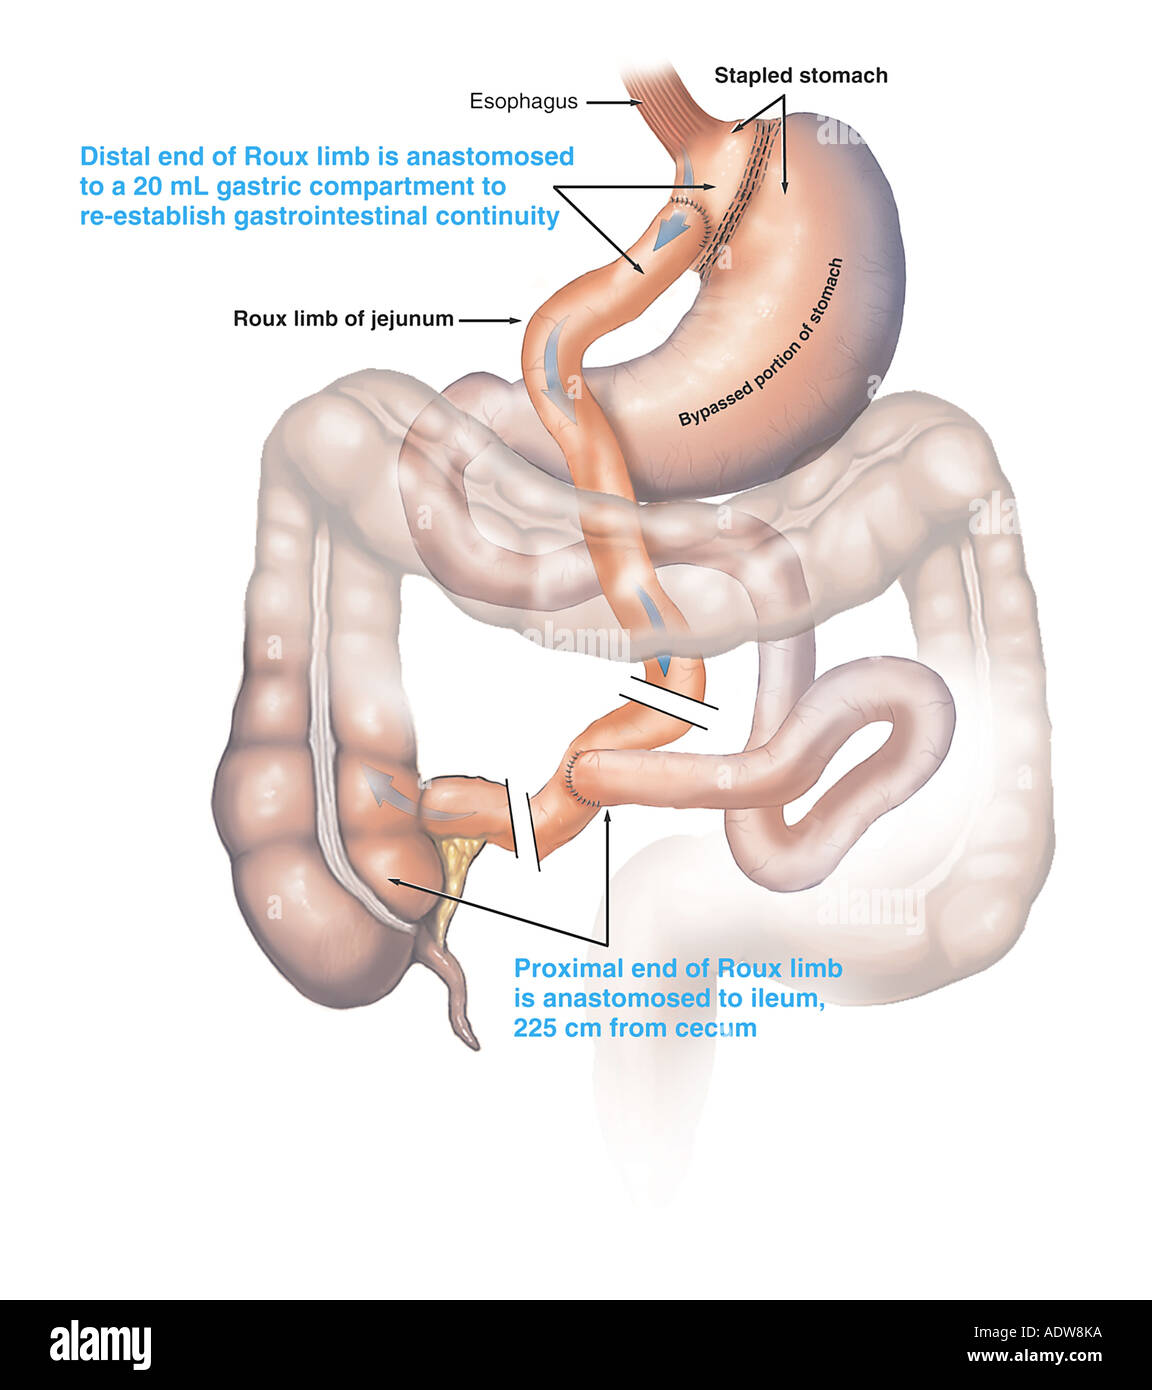 Stomach Roux en Y Gastric Bypass Surgery Stock Photo: 7712569 - Alamy